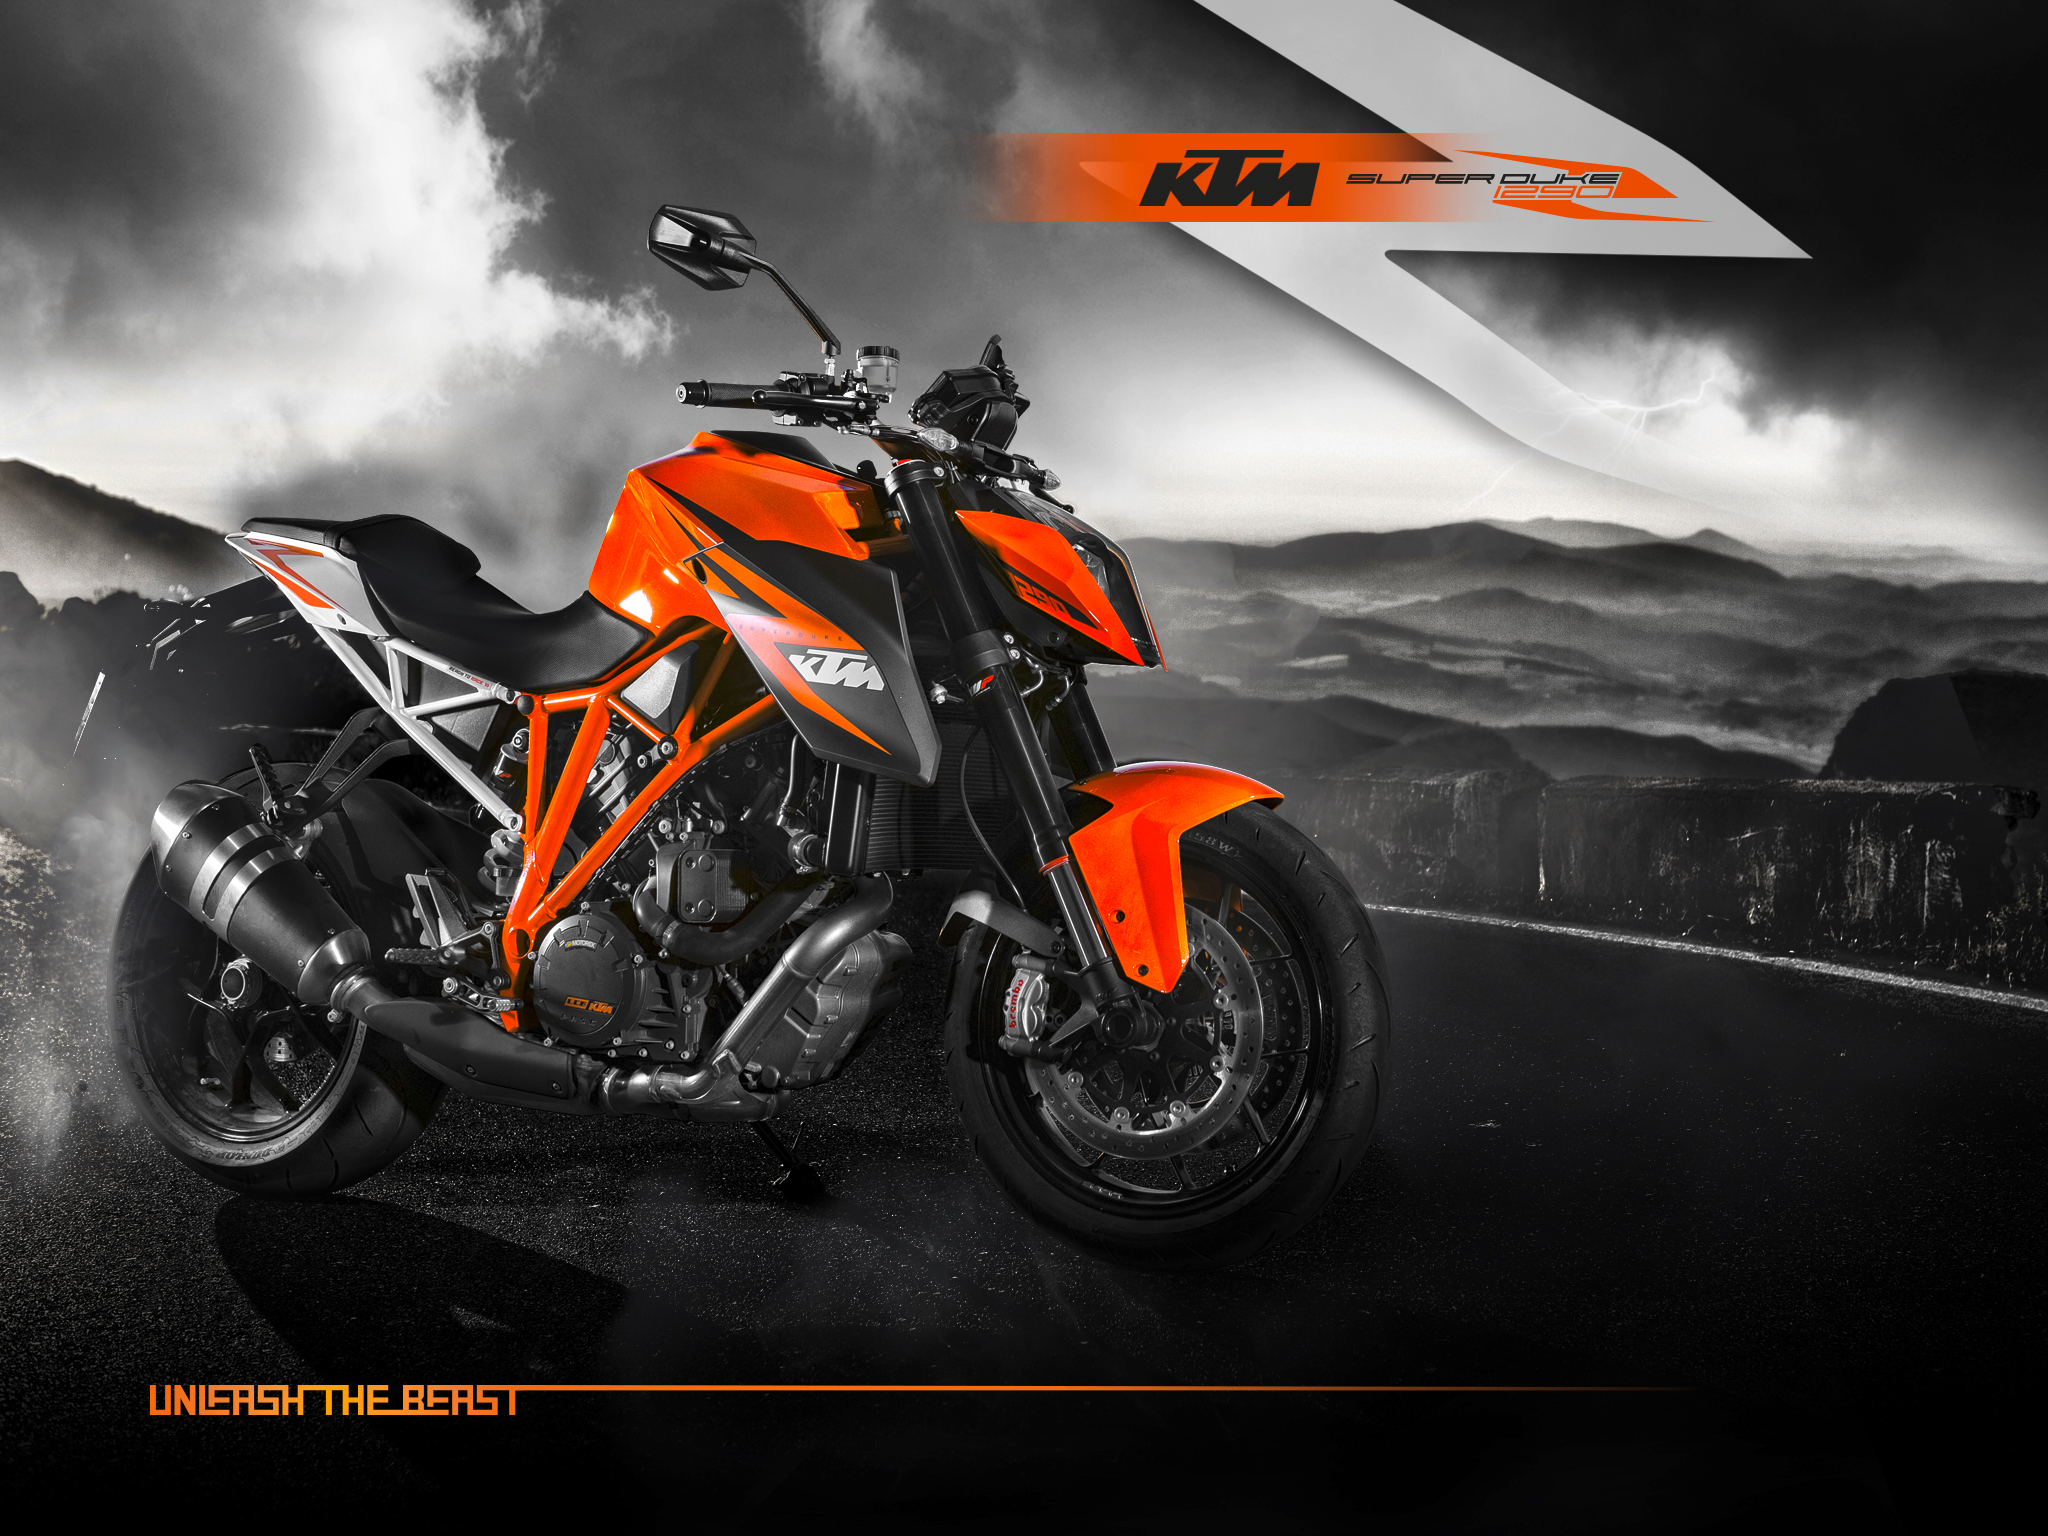 ktm-1290-super-duke-r-official-pics-and-specs-surface-photo-gallery 2